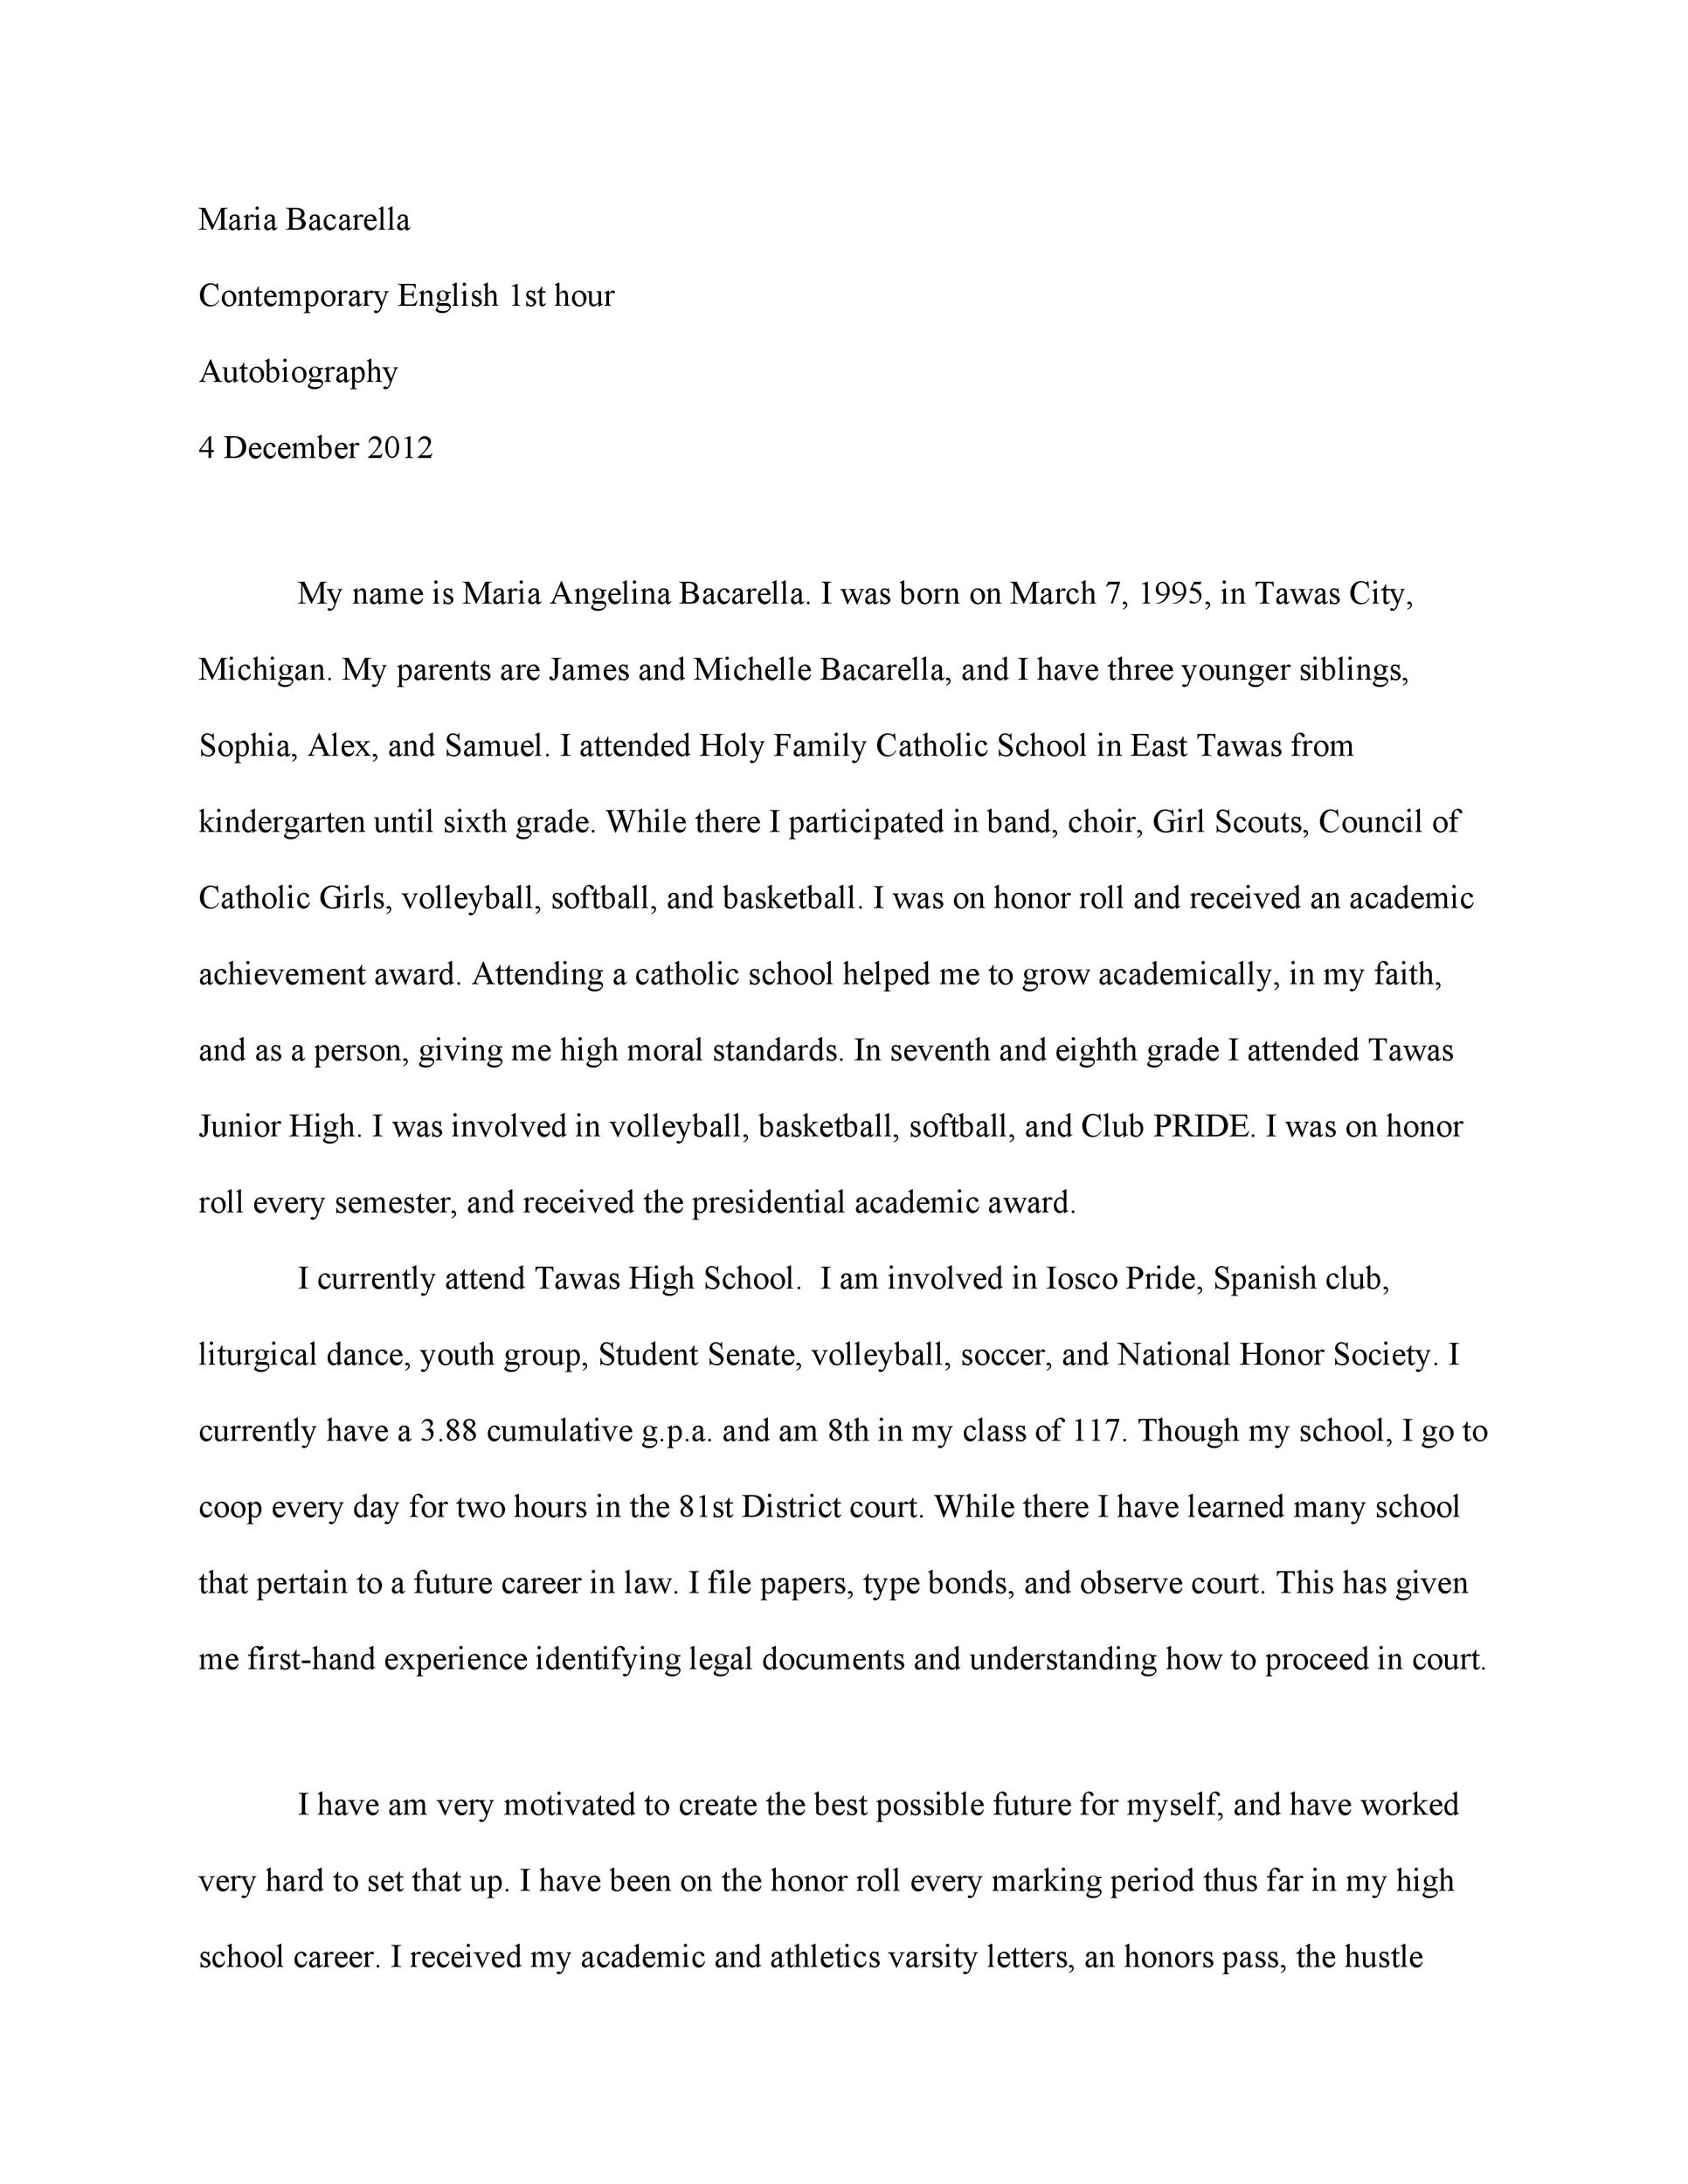 examples of autobiography essays